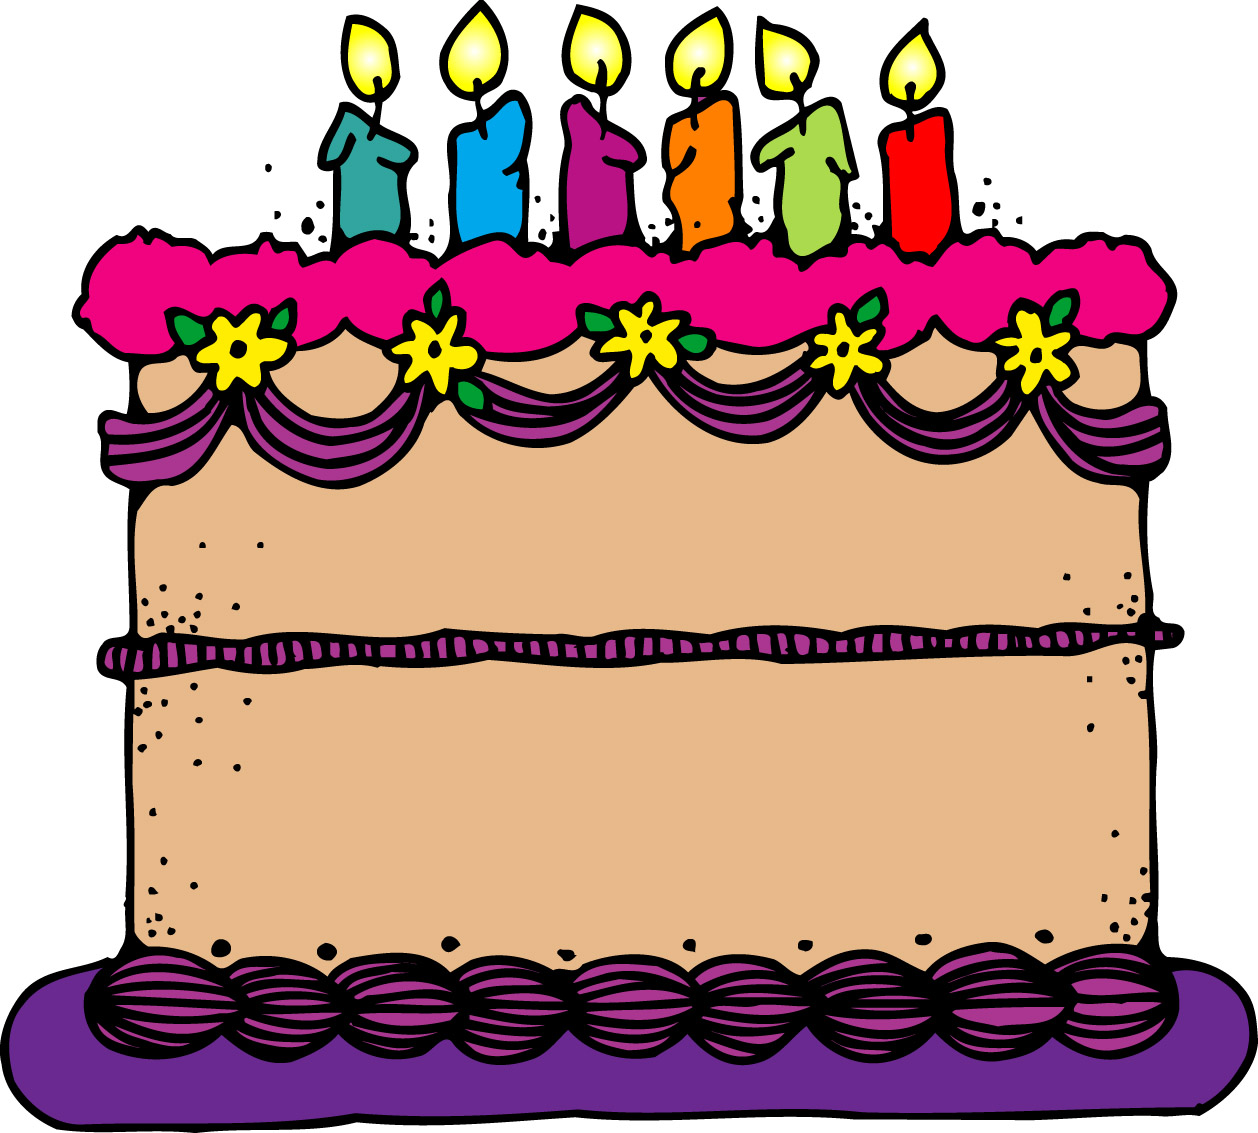 free animated birthday clip art images ; 40943